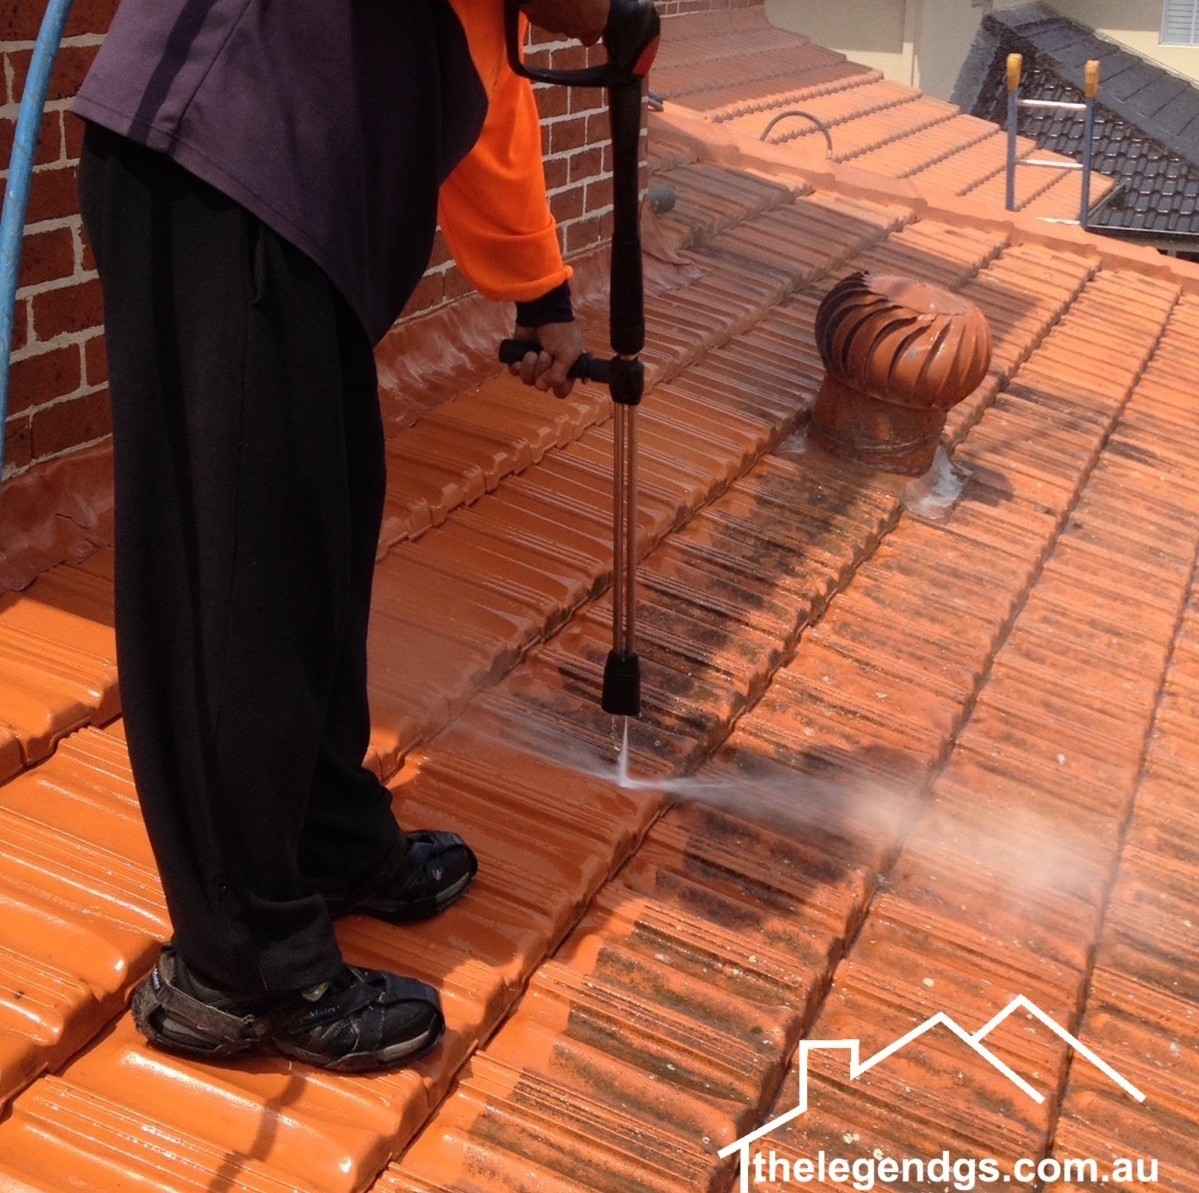 High Pressure Cleaning - The Legend GS